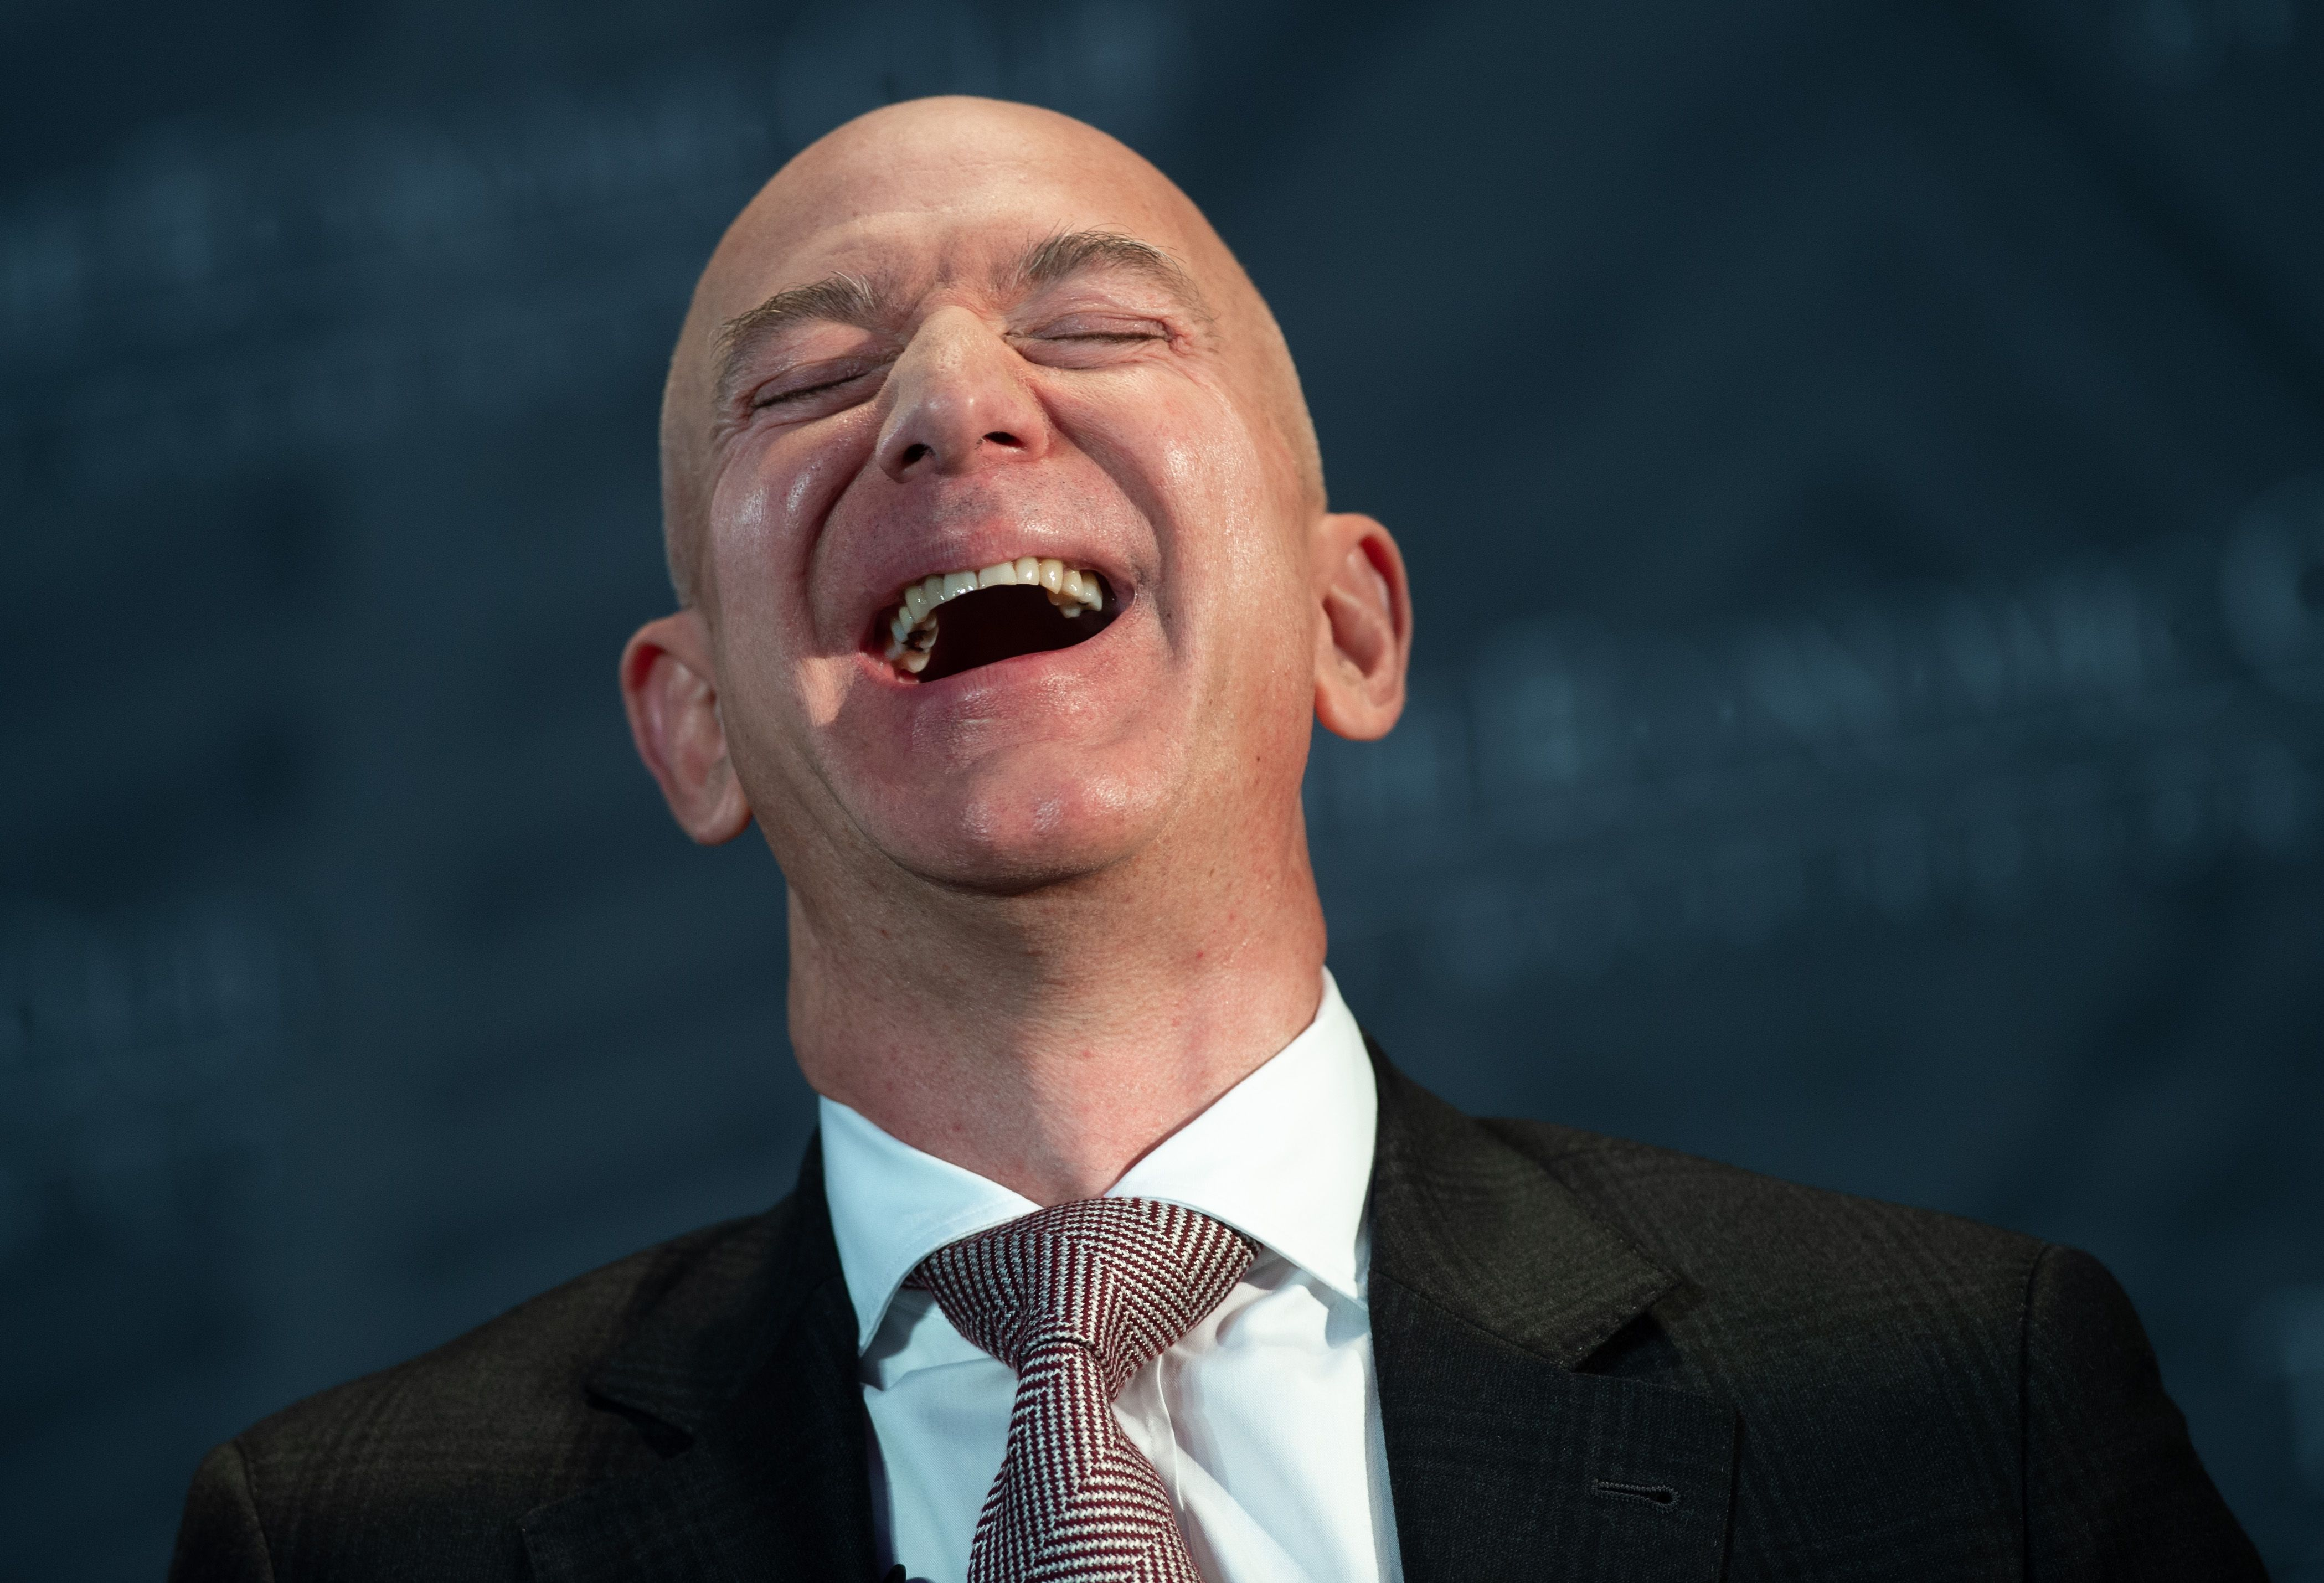 Bezos spent more on new home in Beverly Hills than Amazon has paid so far in US federal income tax for 2019